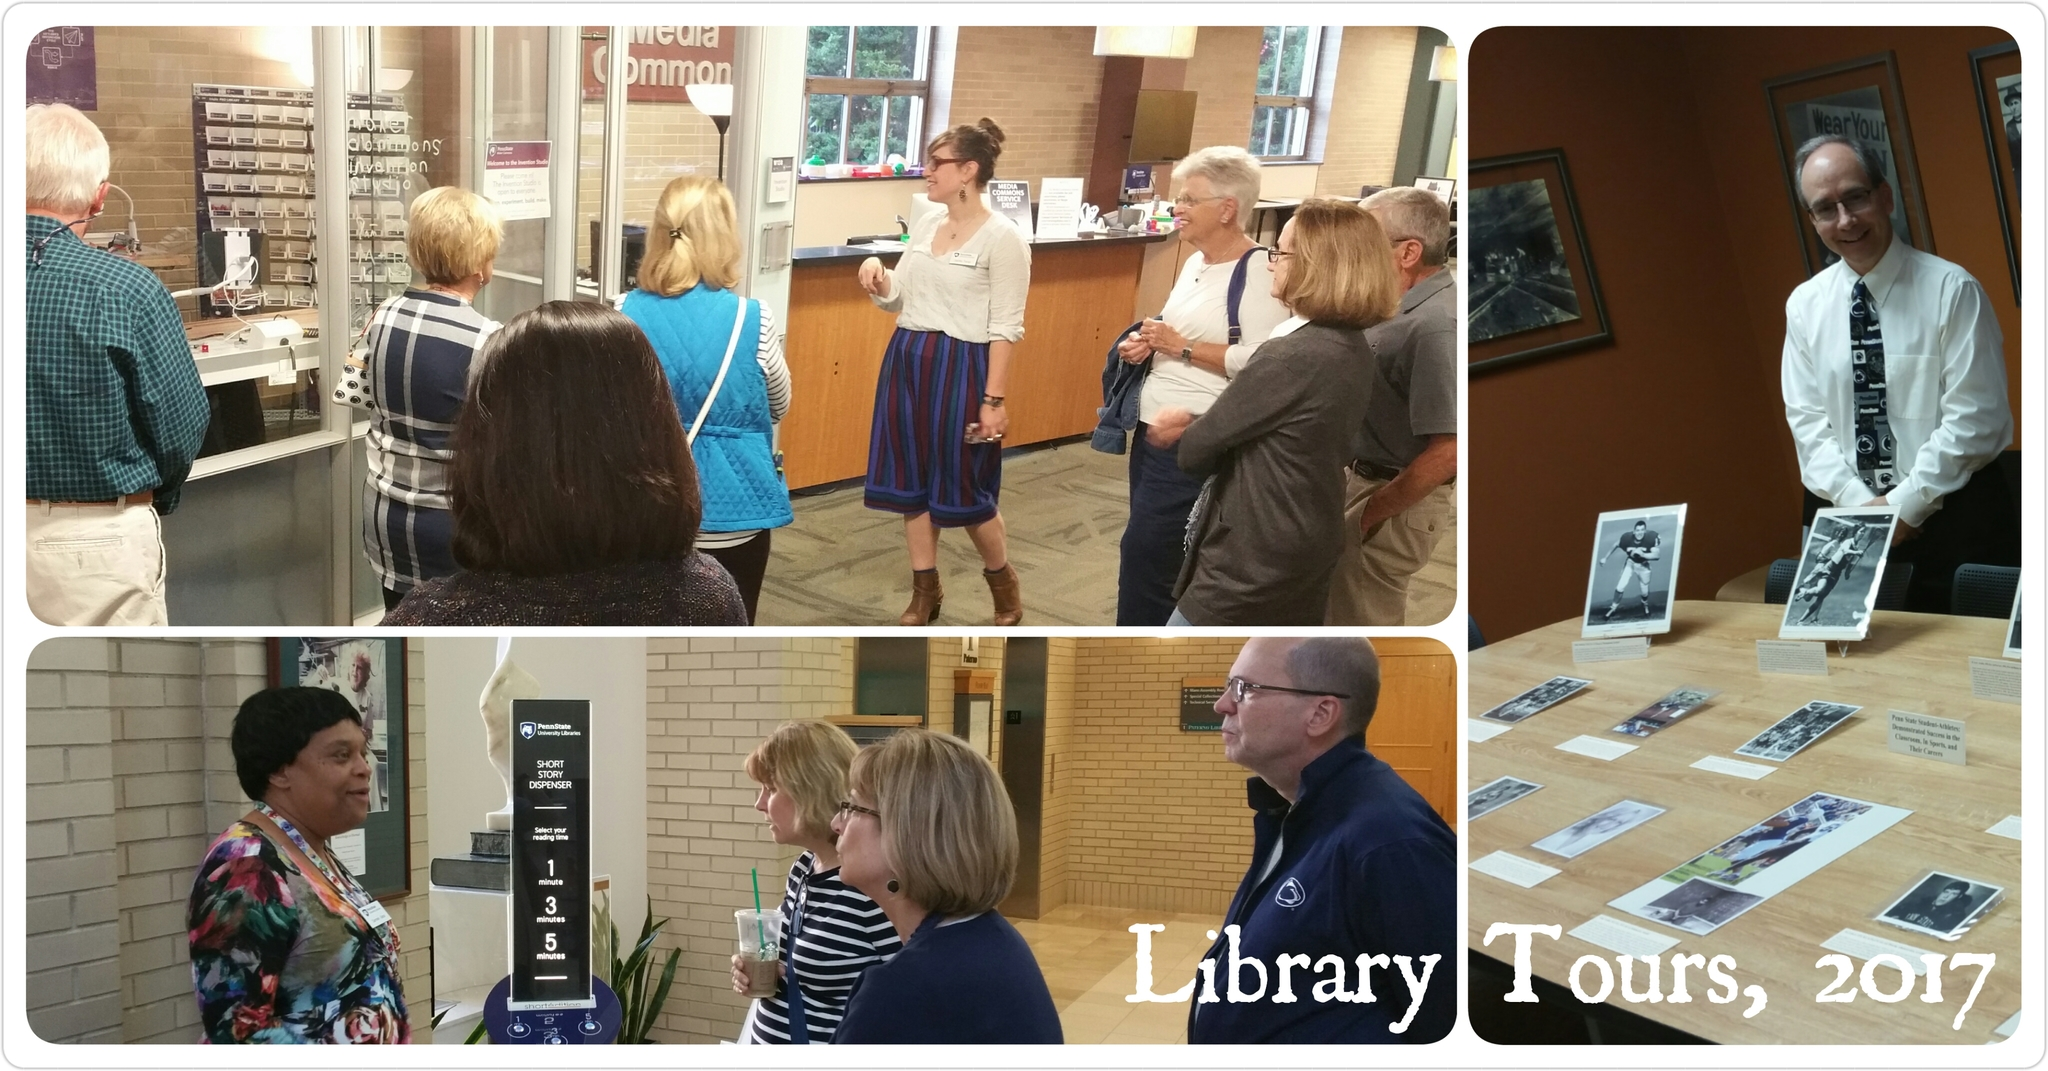 Library Tours - 2017